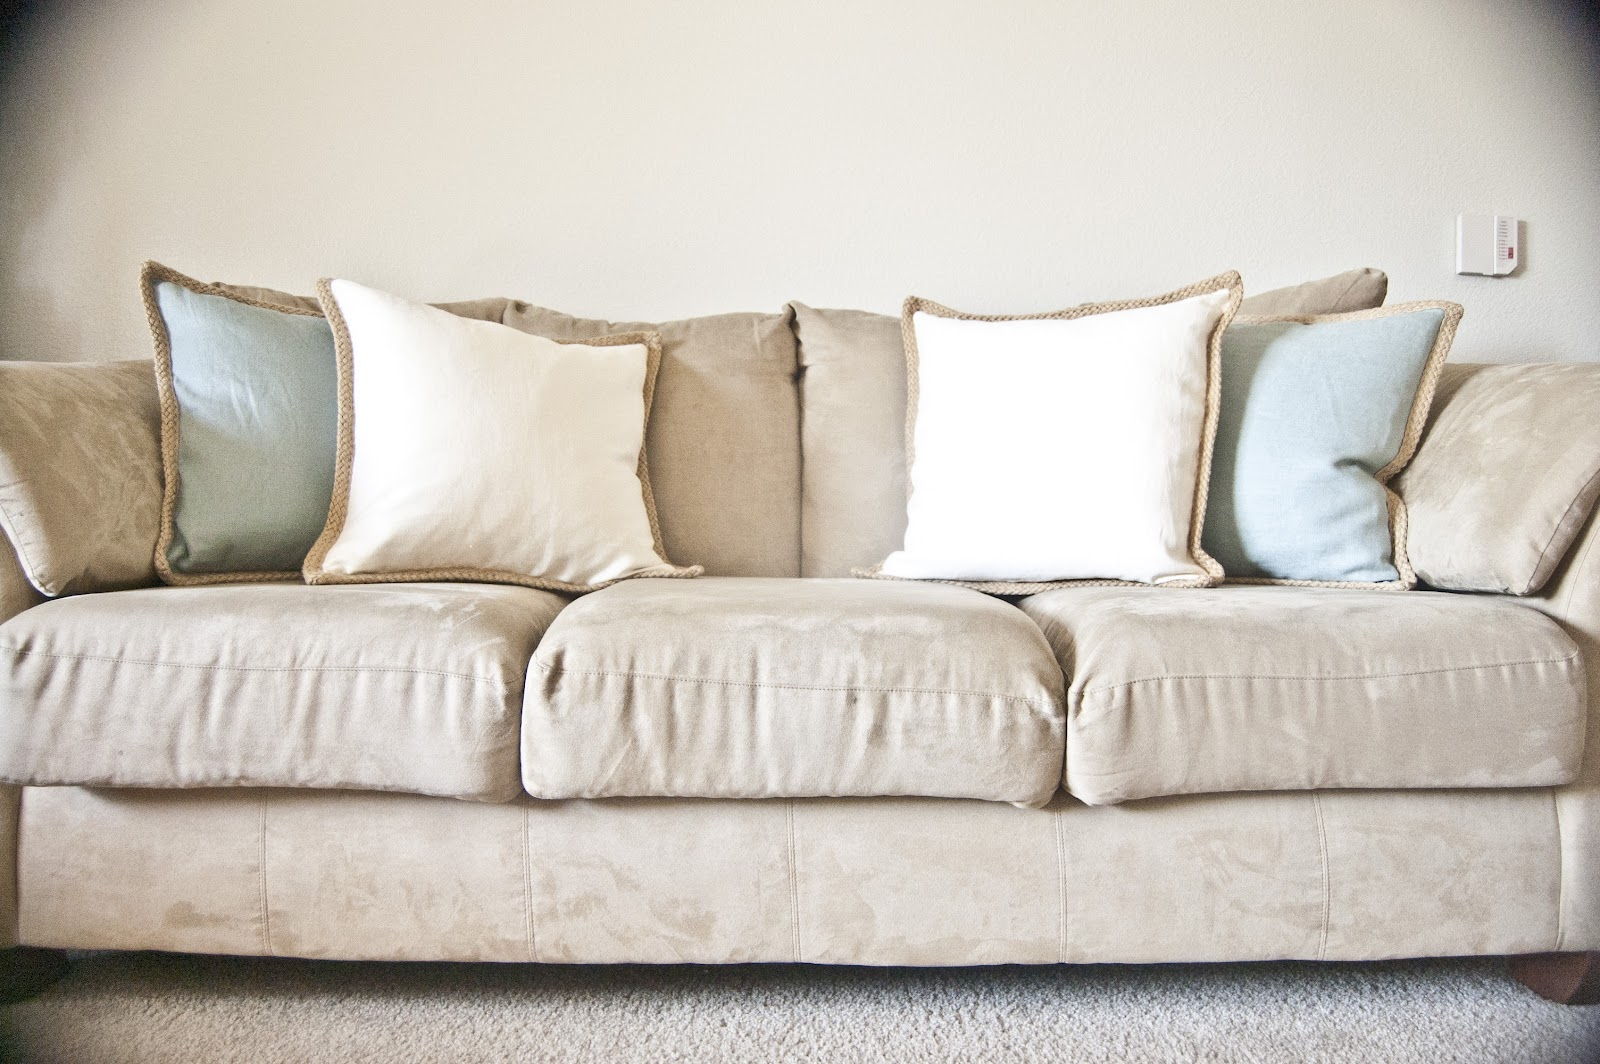 Stuffing Sofa Cushions | Restuffing Couch Cushions | Restuffing Sofa Cushions